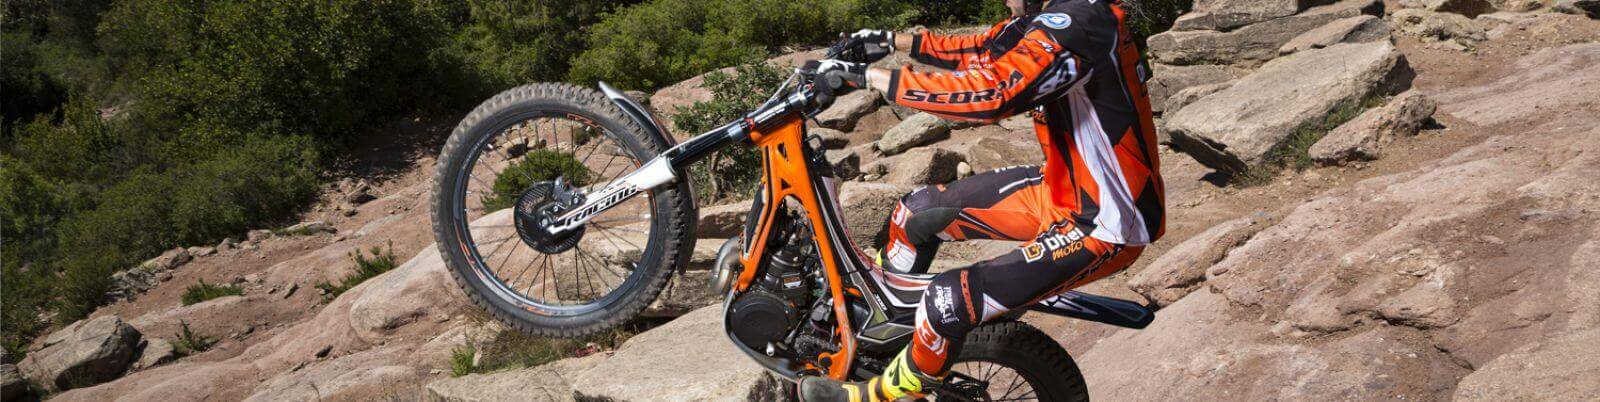 Scorpa Enduro Motorcycle